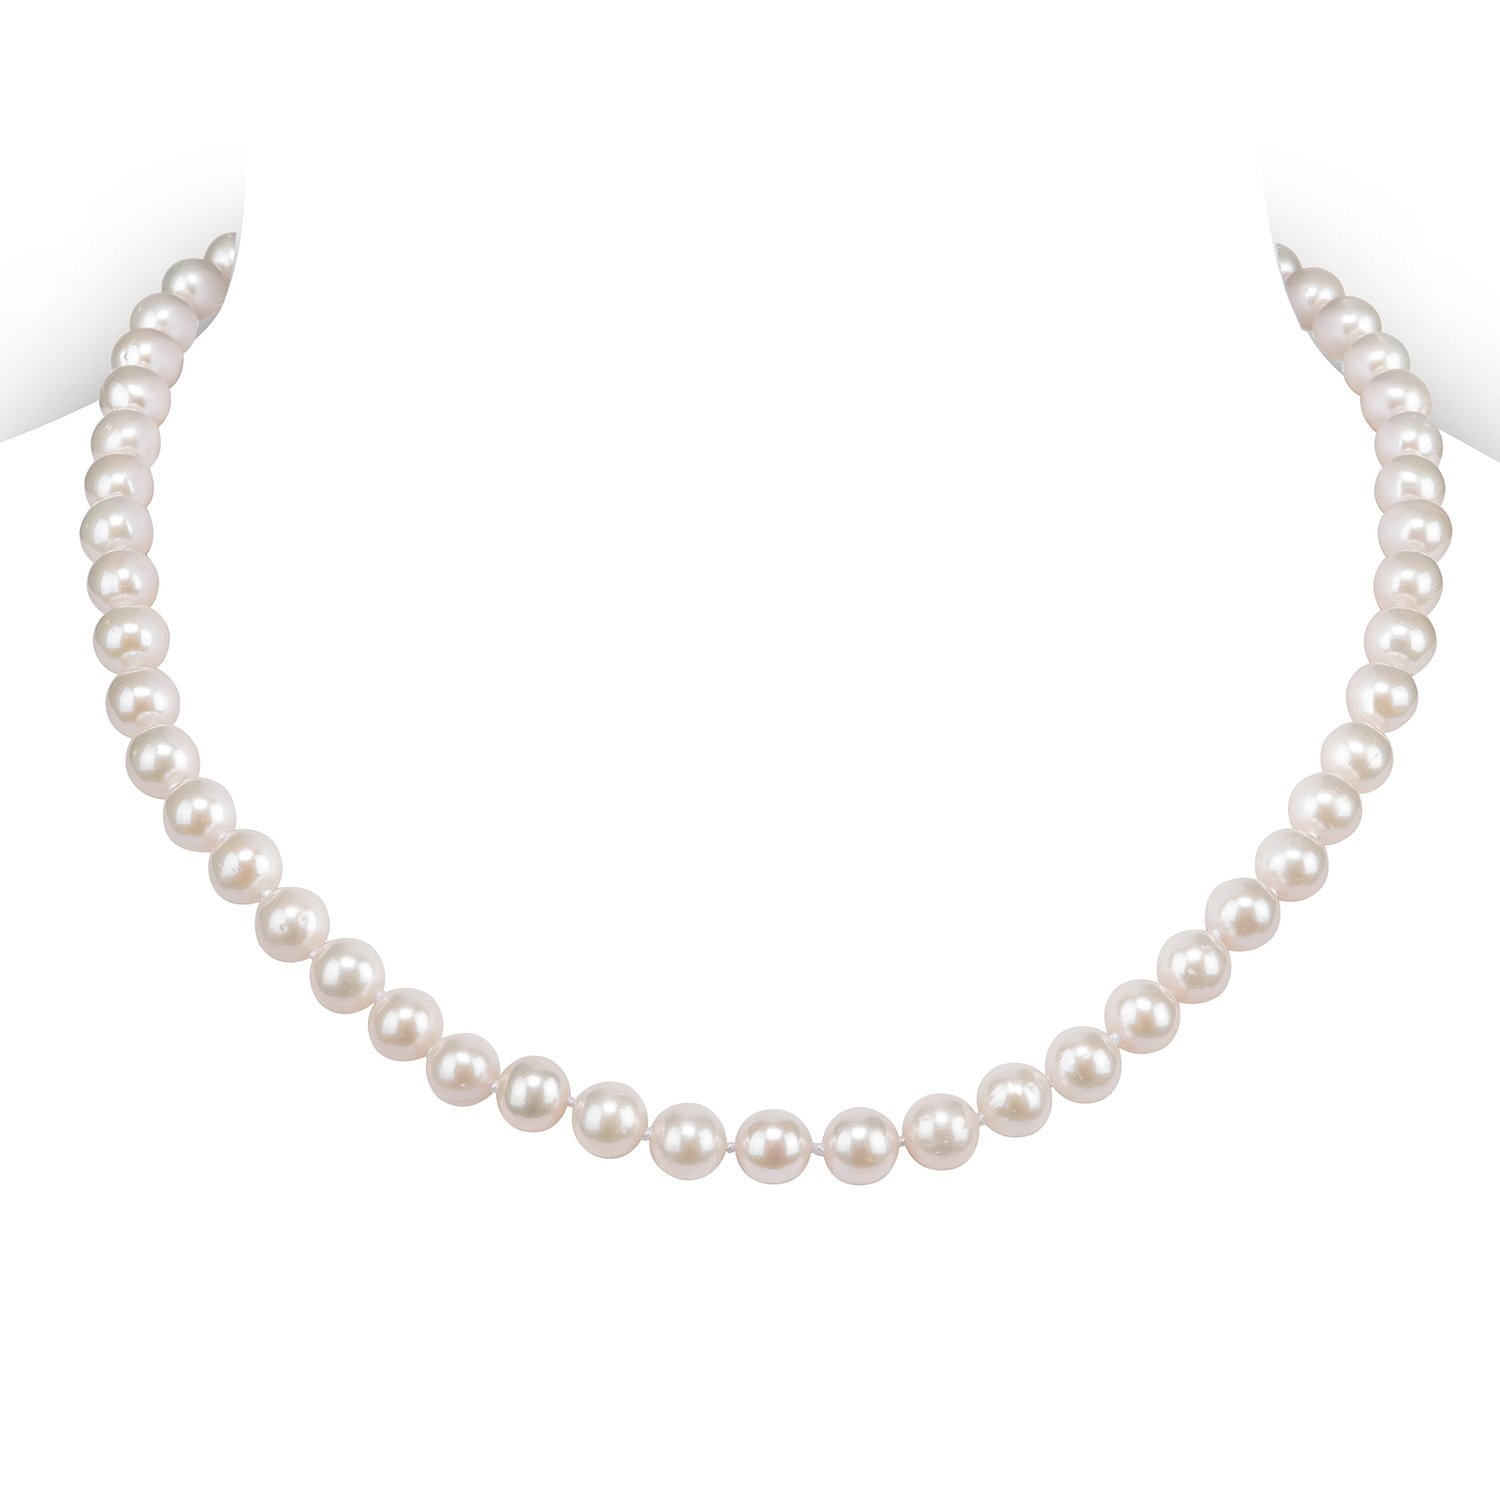 PAVOI Sterling Silver White Freshwater Cultured Pearl Necklace (16, 6mm)